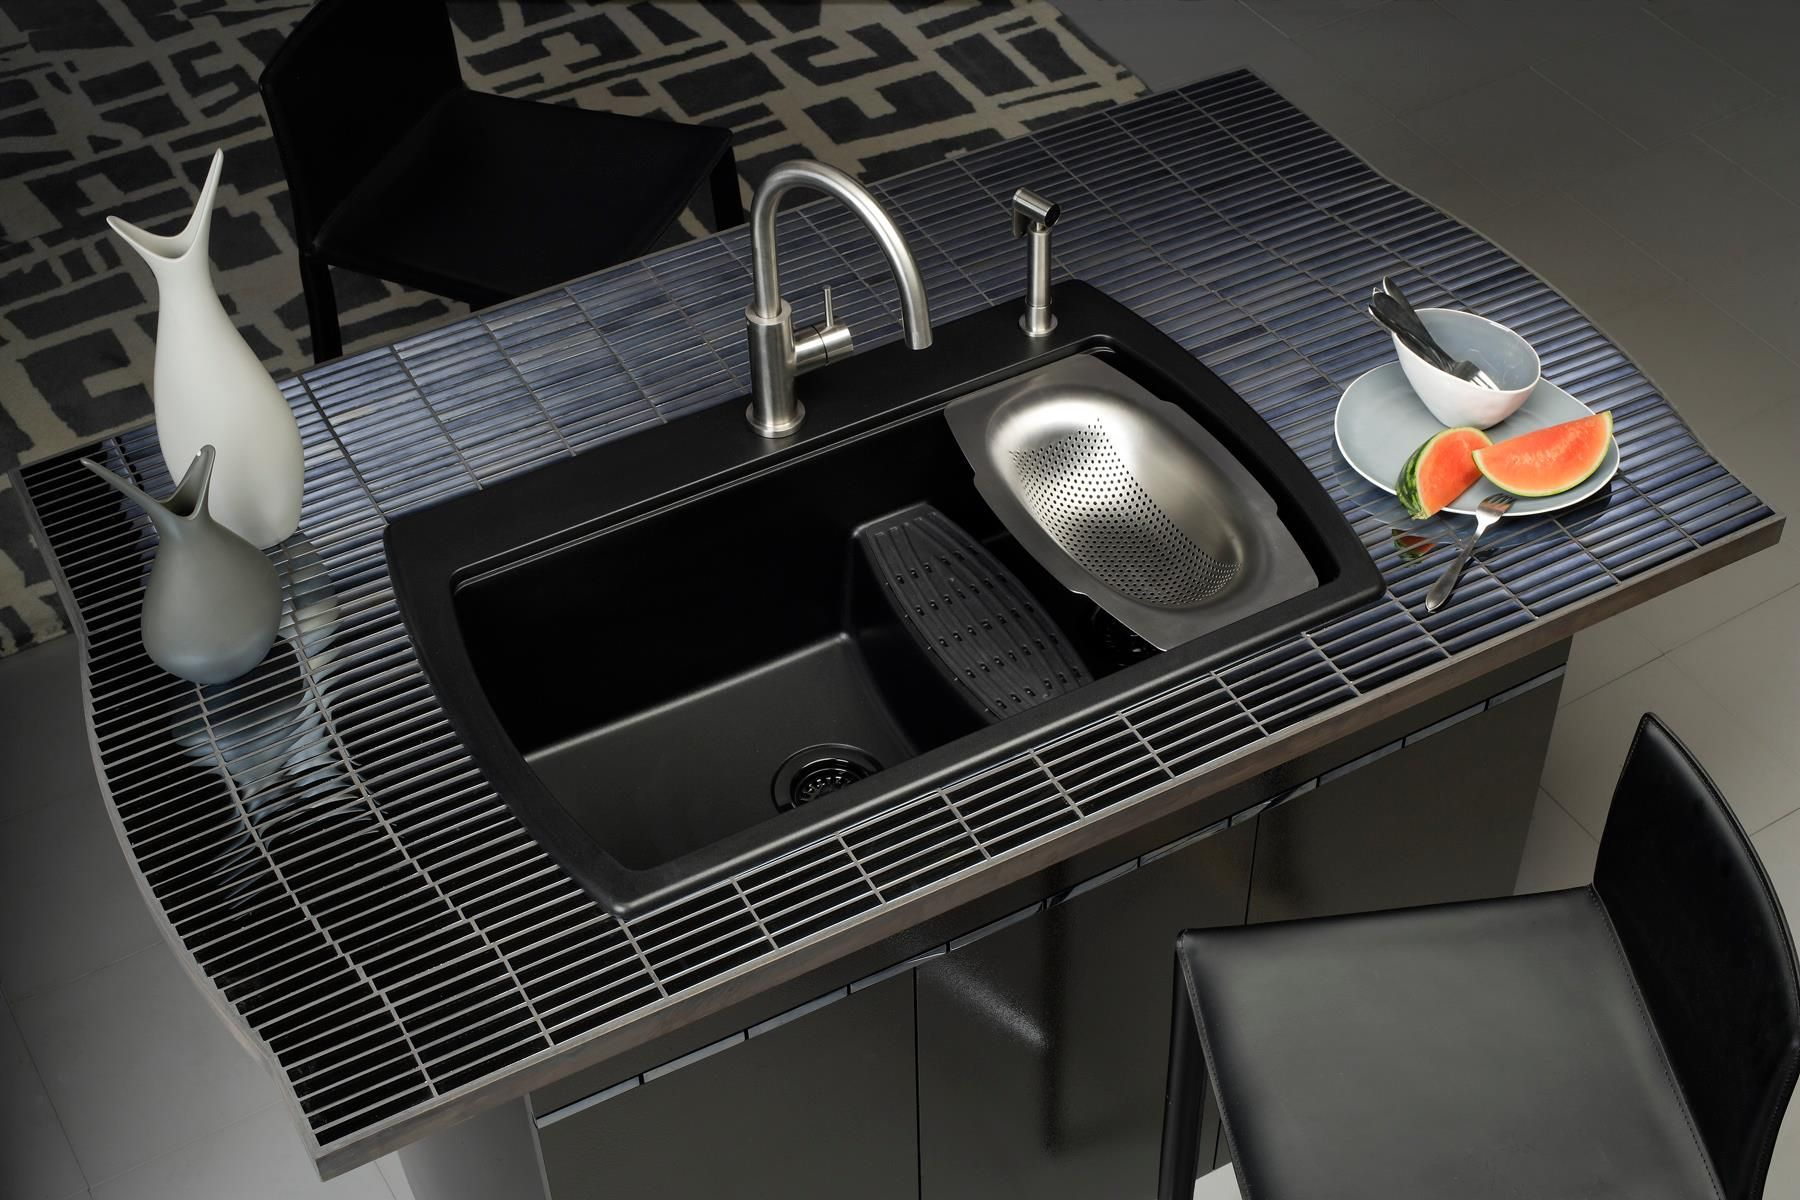 Multi-level sinks make washing large pots or cookie sheets easier ...